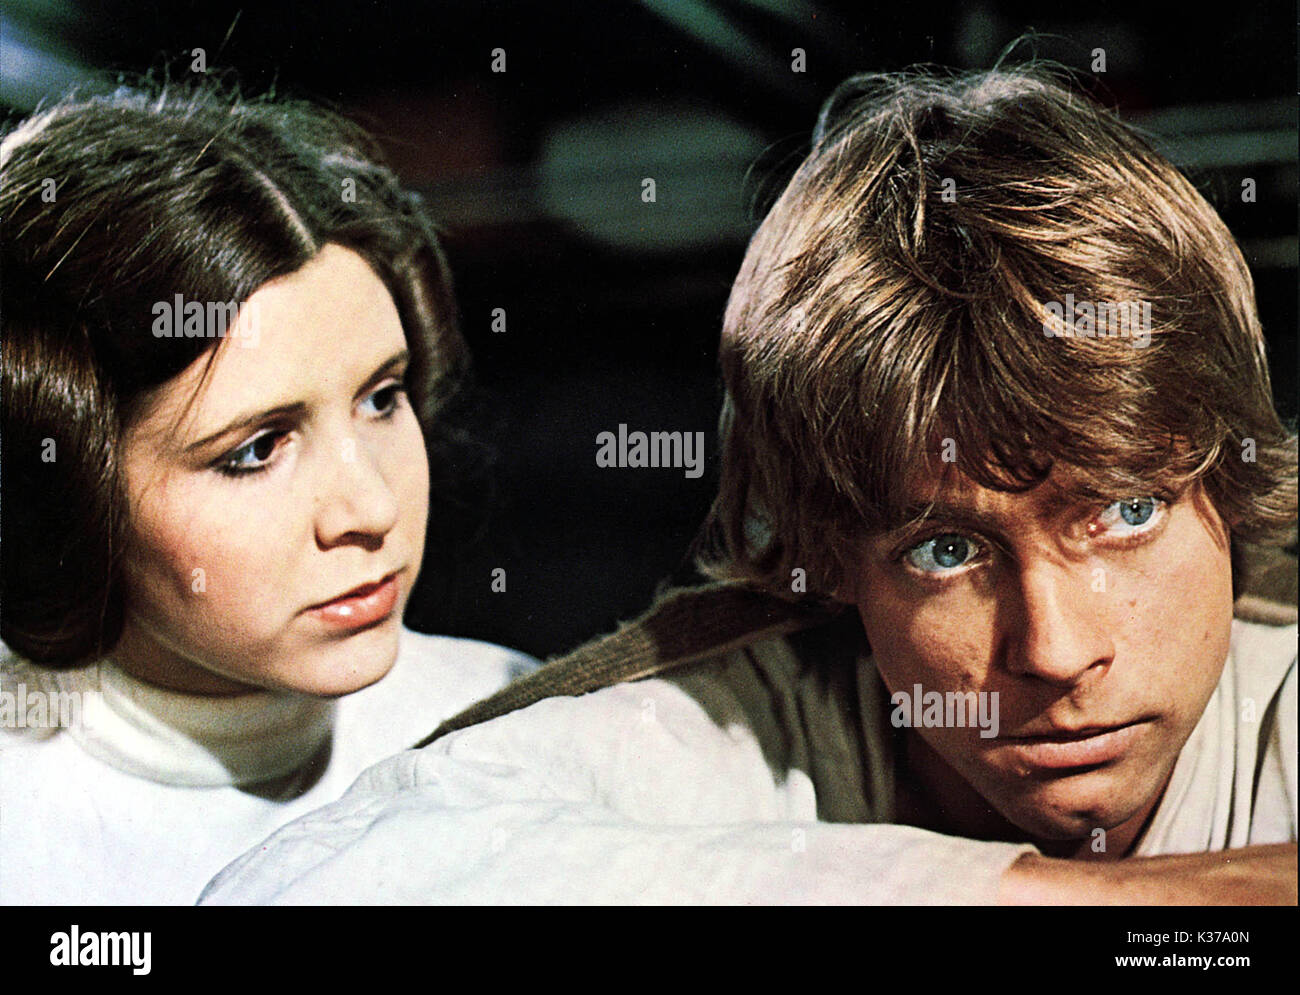 STAR WARS YOU MUST CREDIT LUCASFILMS CARRIE FISHER as Princess Leia, MARK HAMILL as Luke Skywalker     Date: 1977 - Stock Image